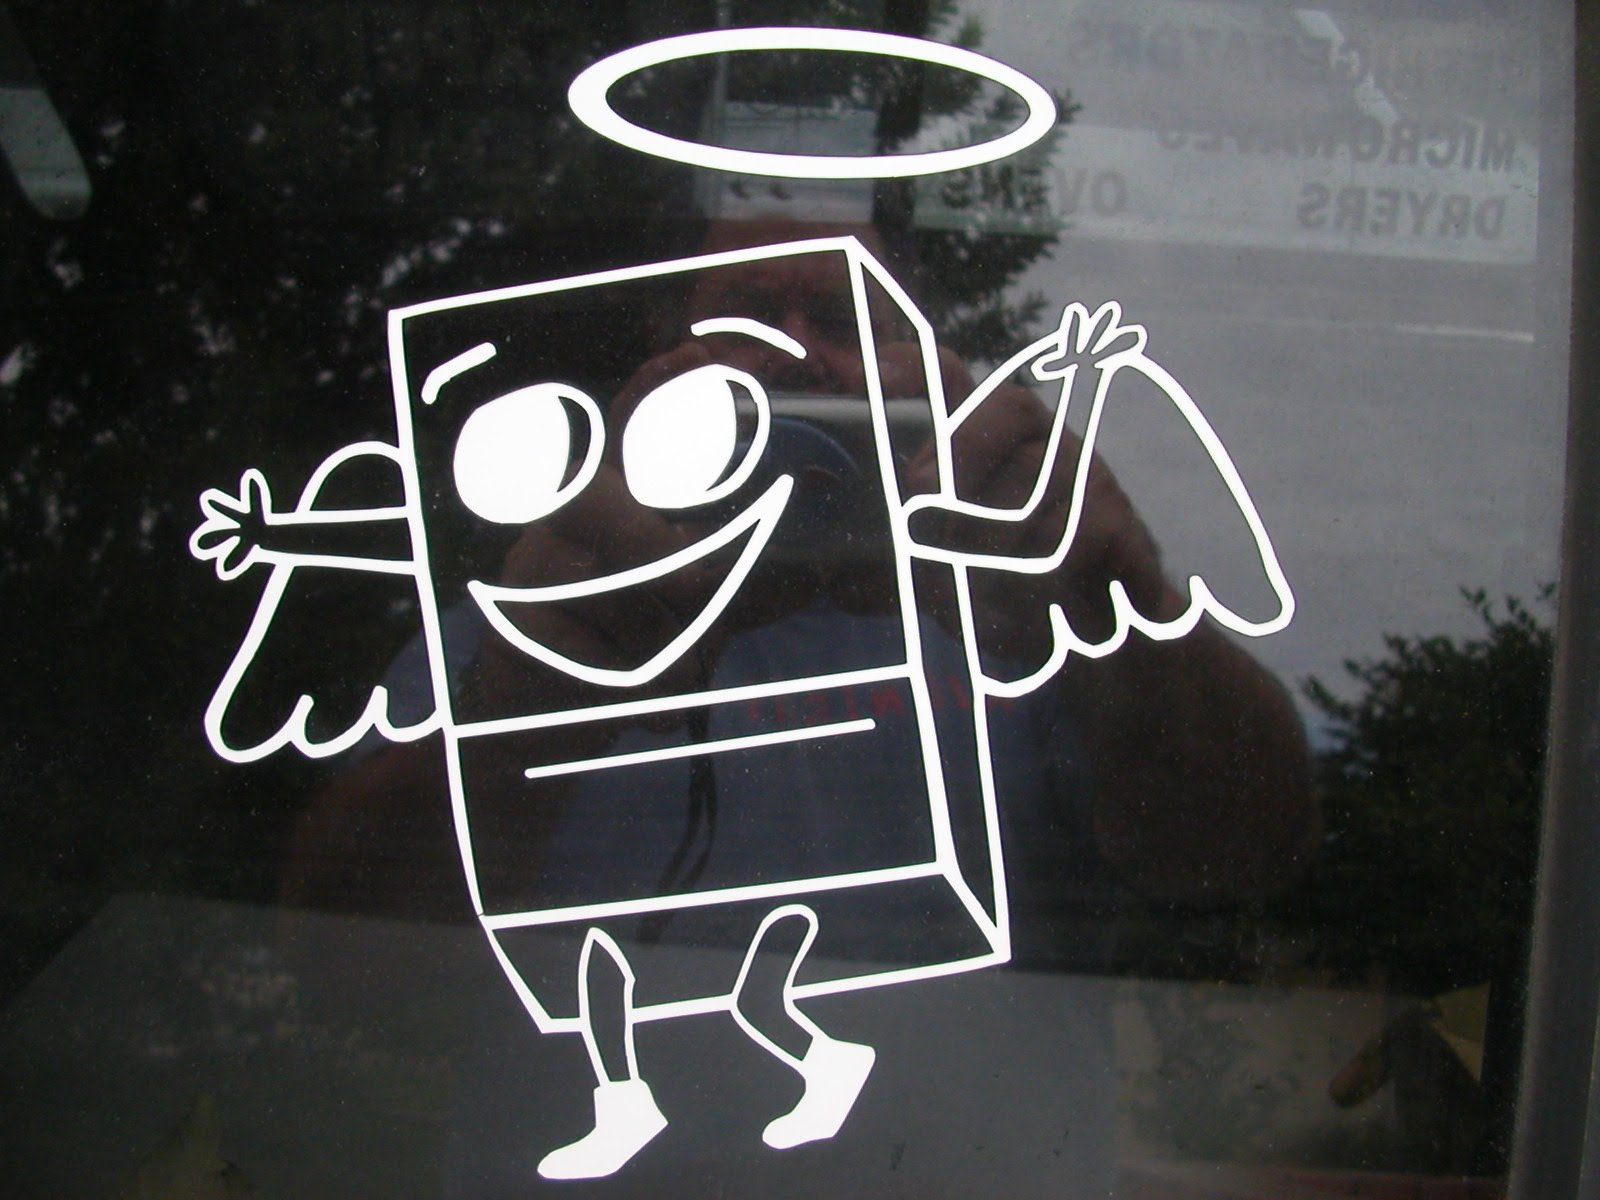 This is an appliance Angel. Pretty much a good mood I'd say.